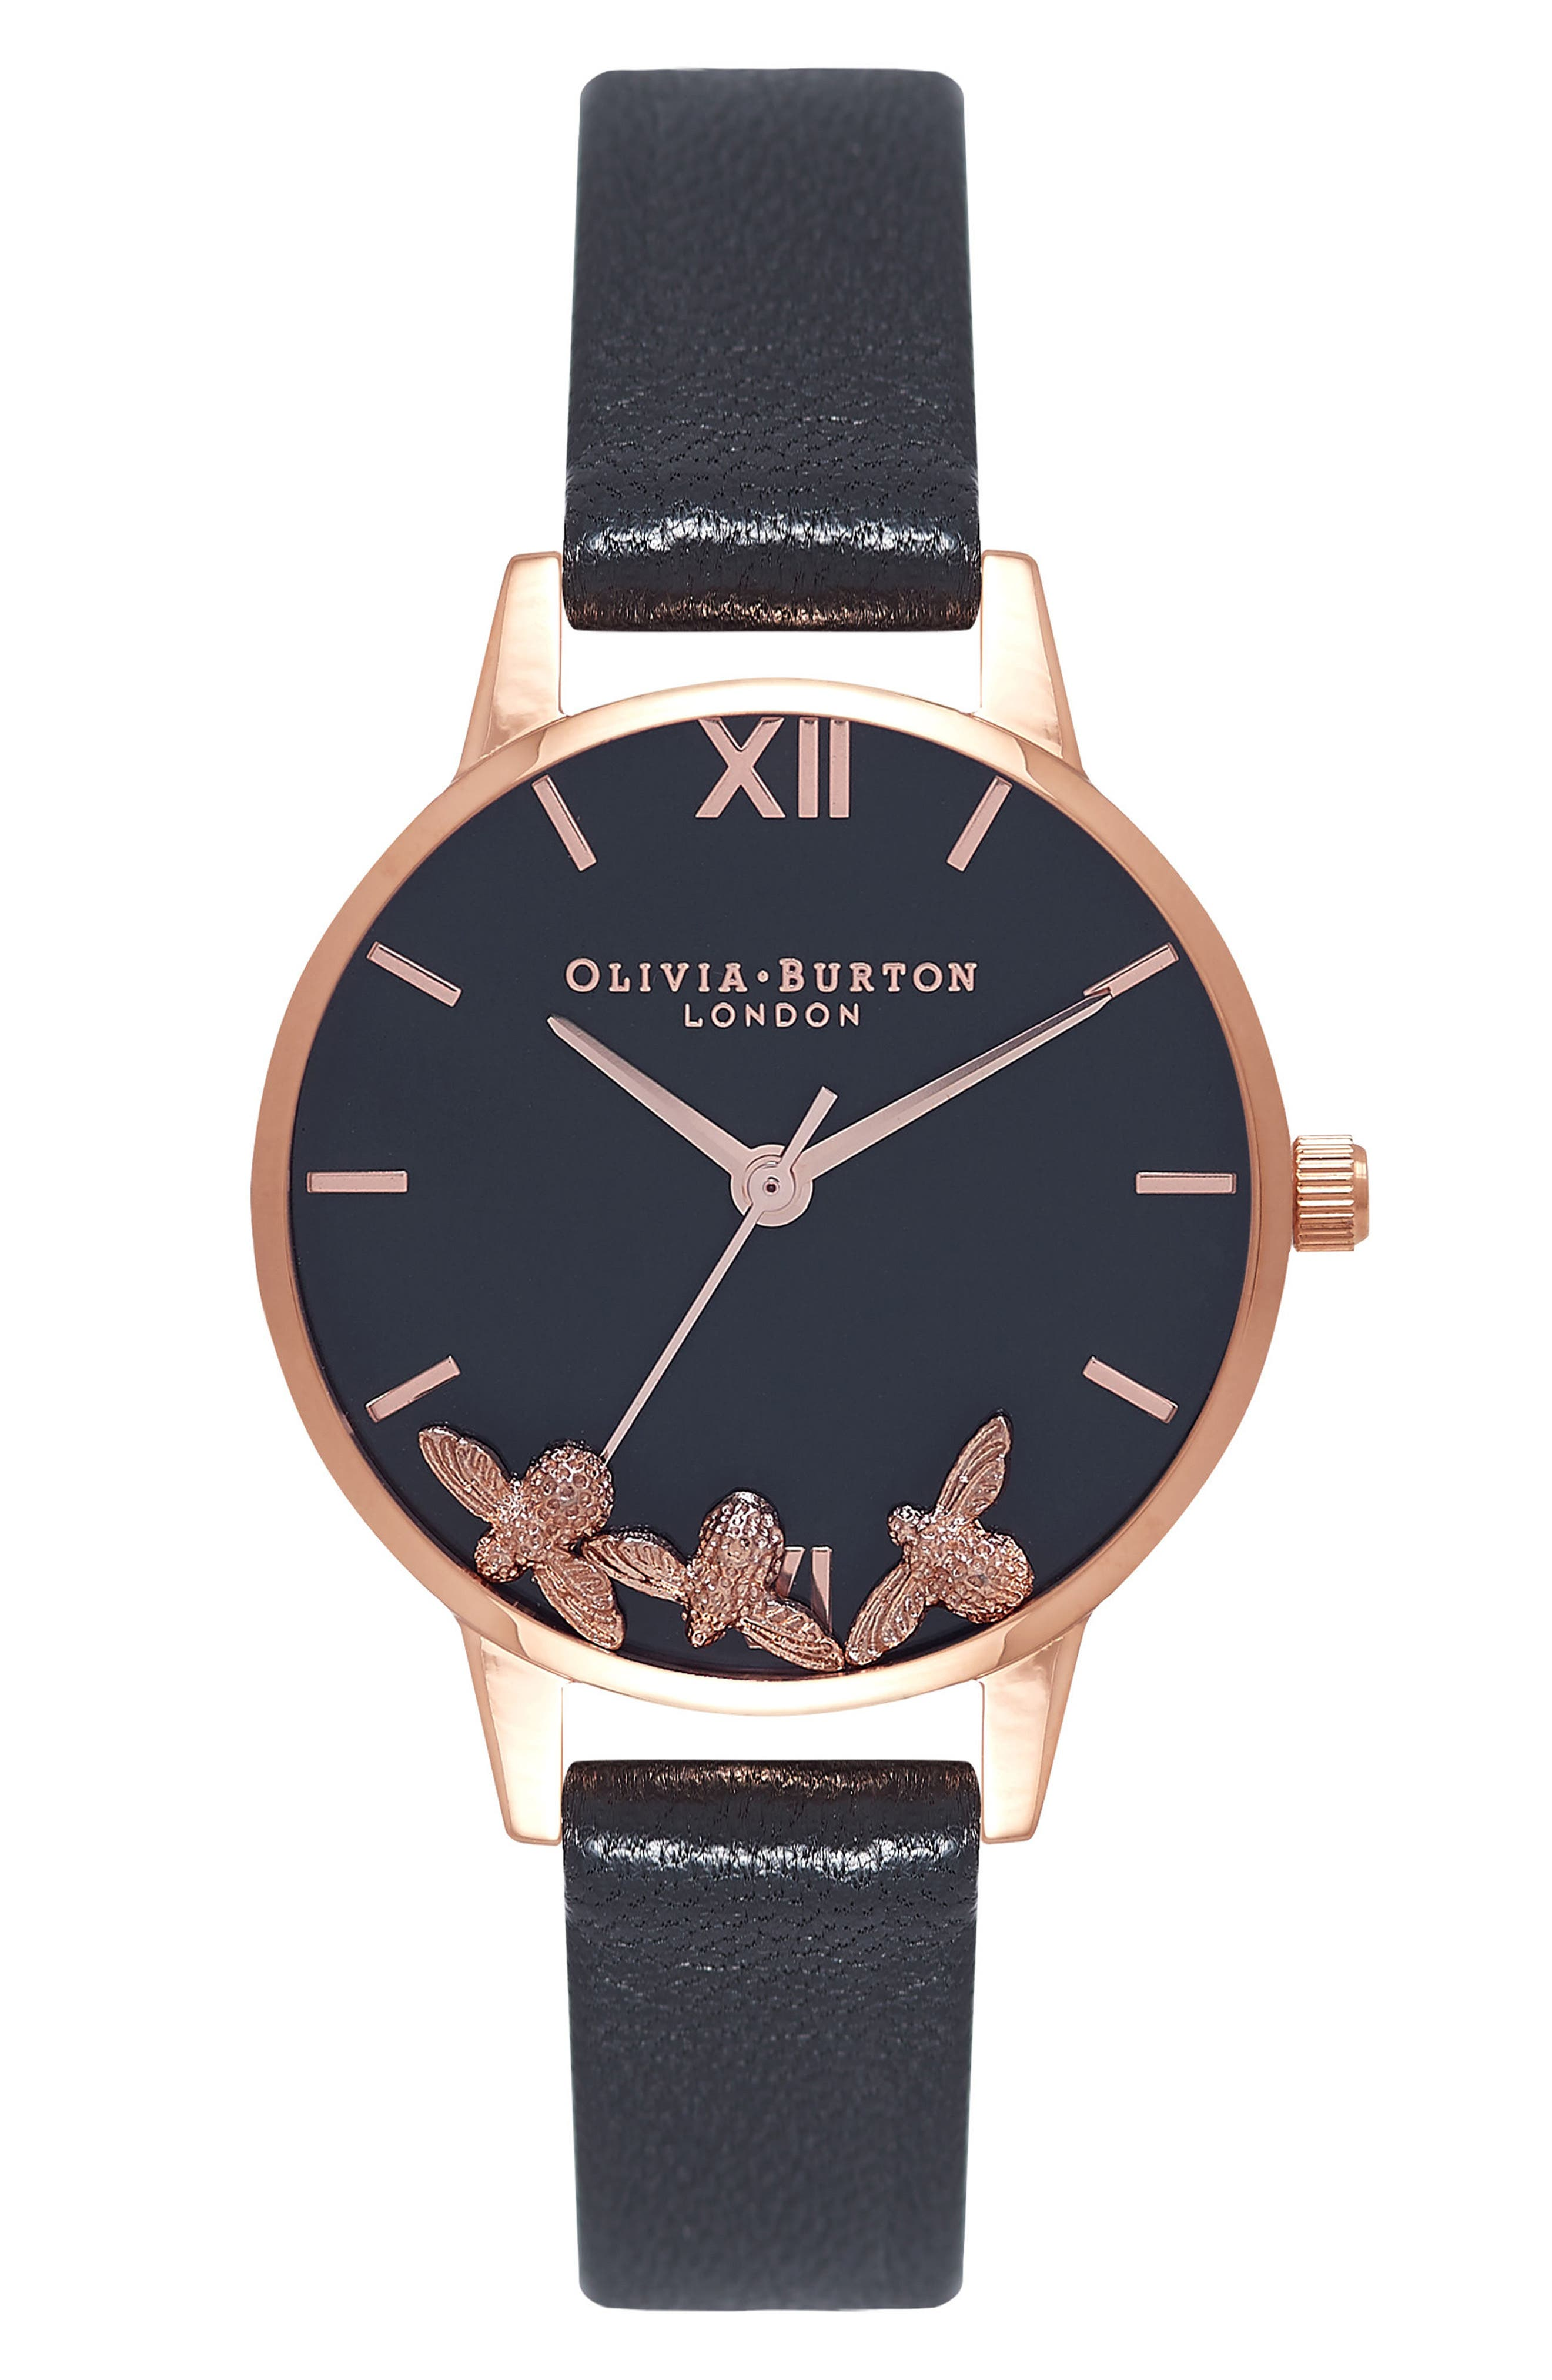 OLIVIA BURTON Busy Bees Leather Strap Watch, 30mm, Main, color, BLACK/ ROSE GOLD